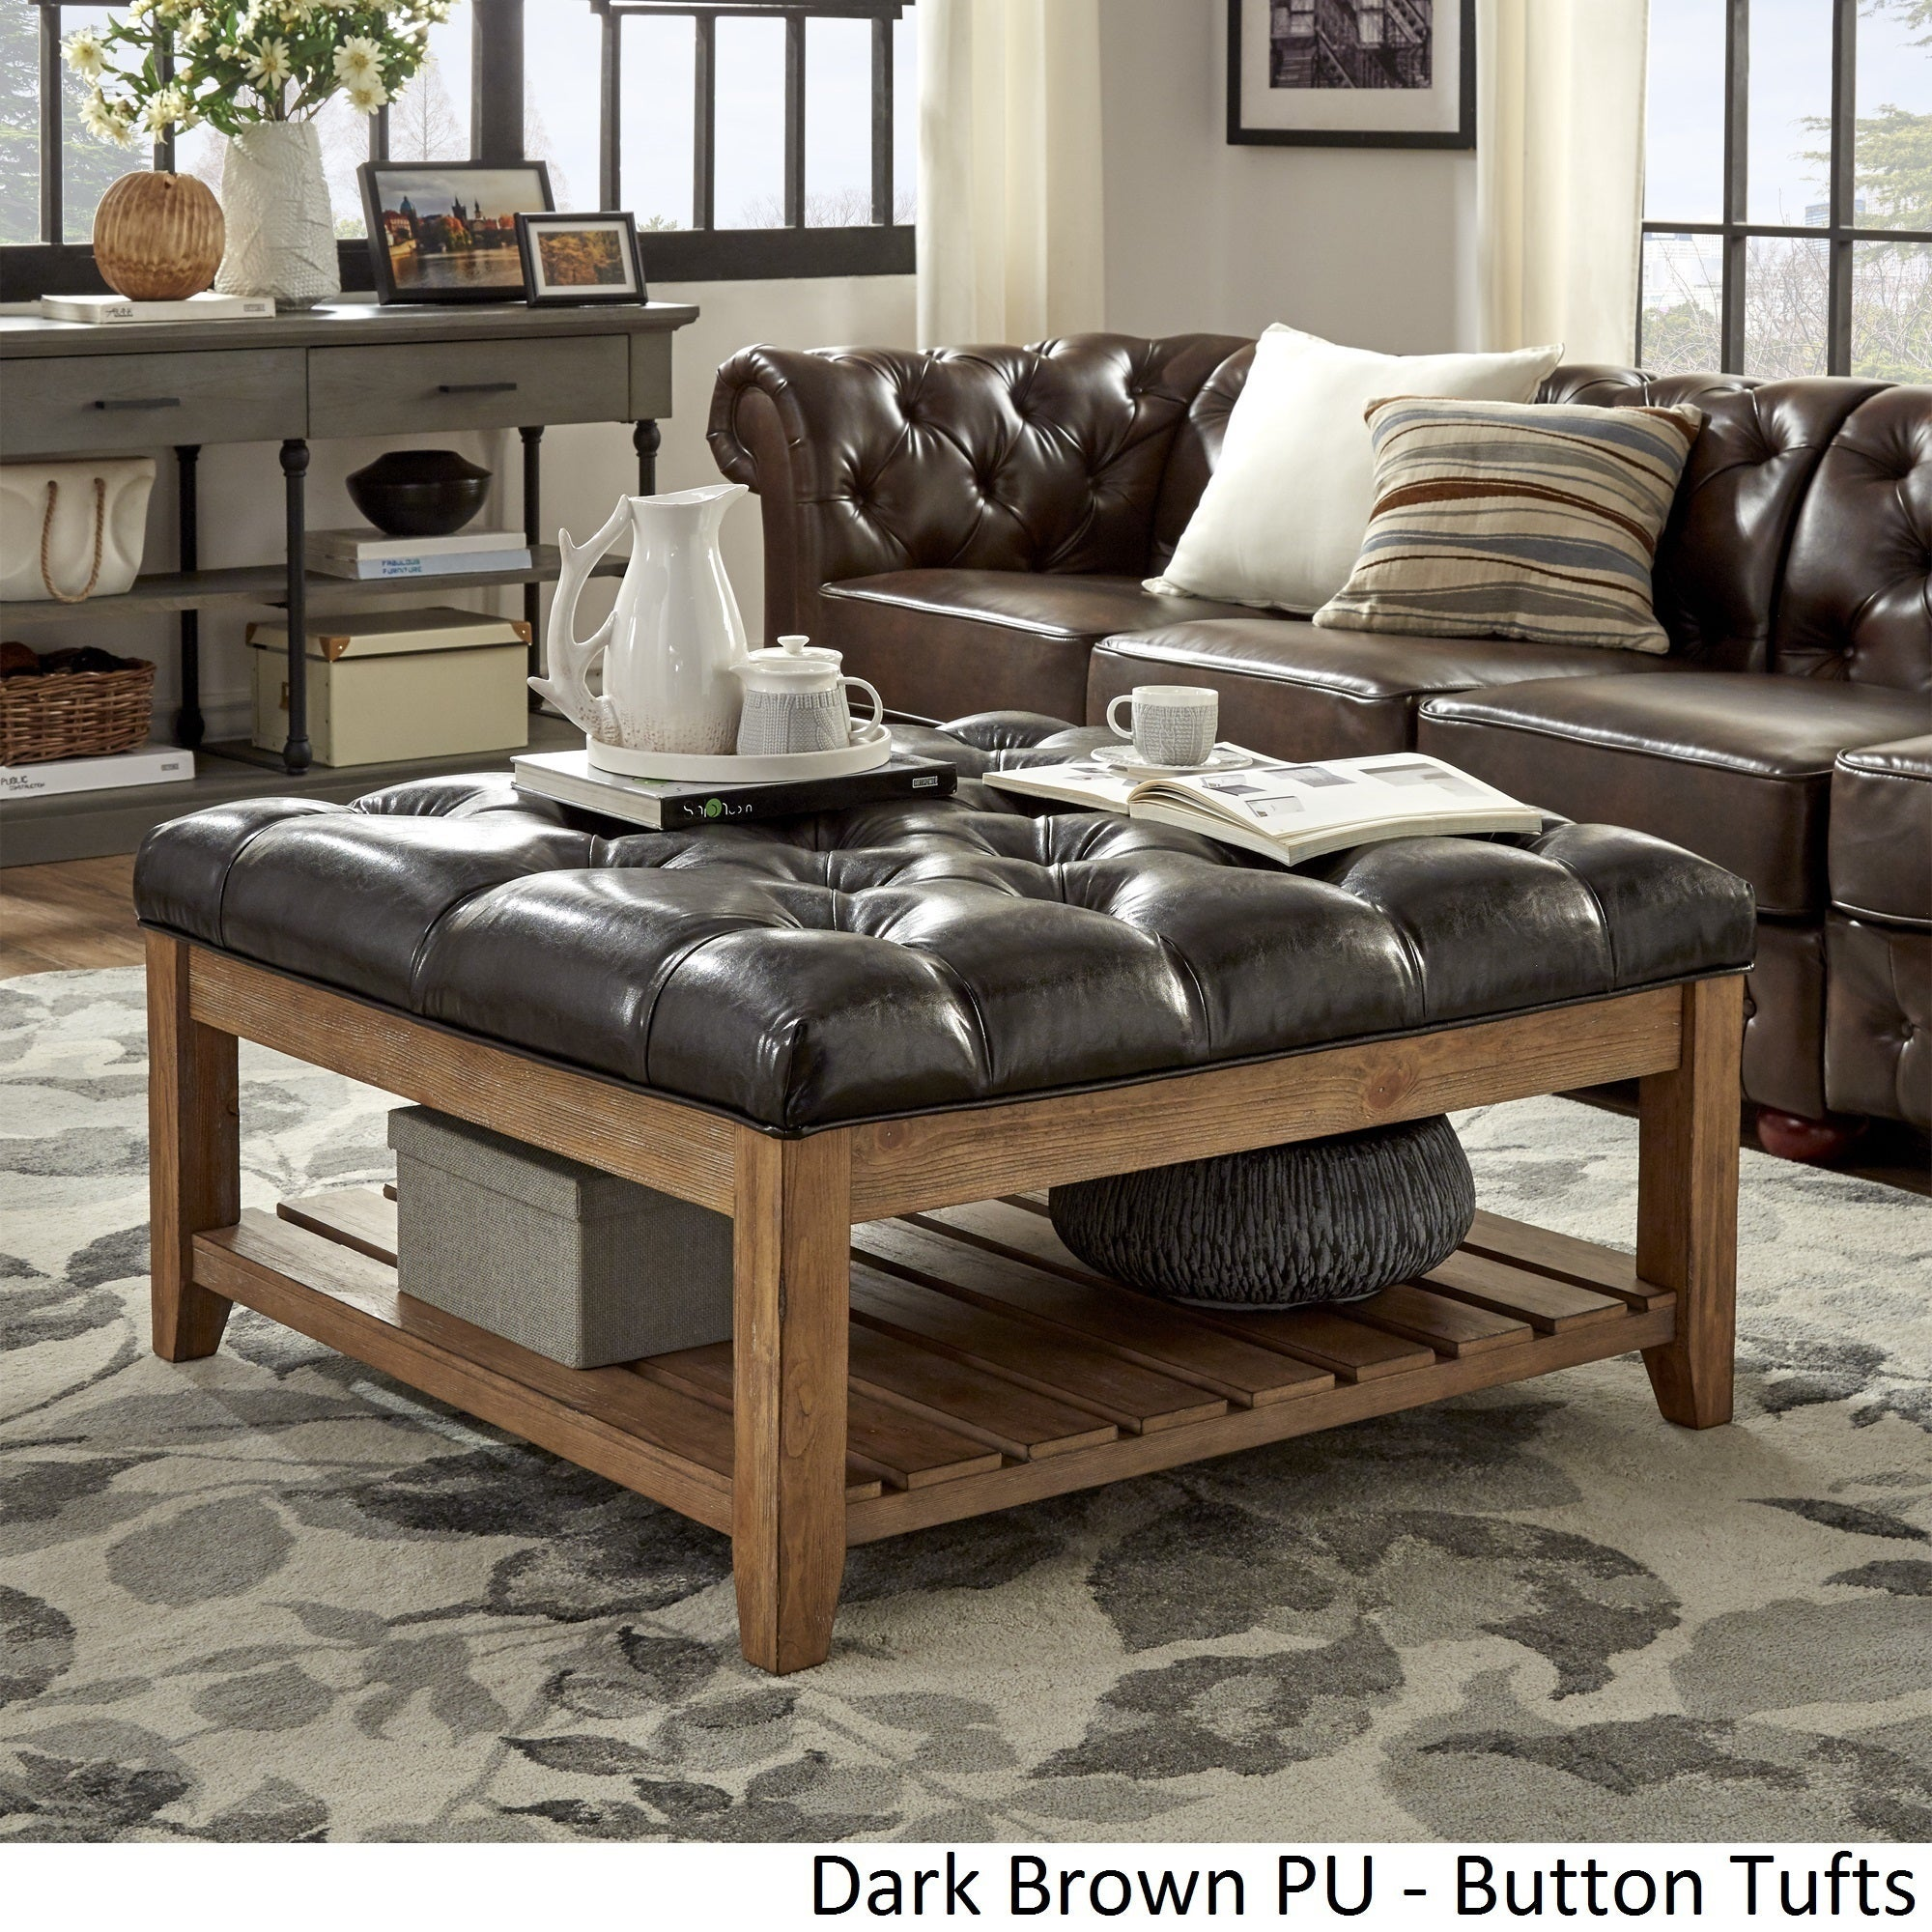 Pine Coffee Table Hull: Lennon Pine Planked Storage Ottoman Coffee Table By